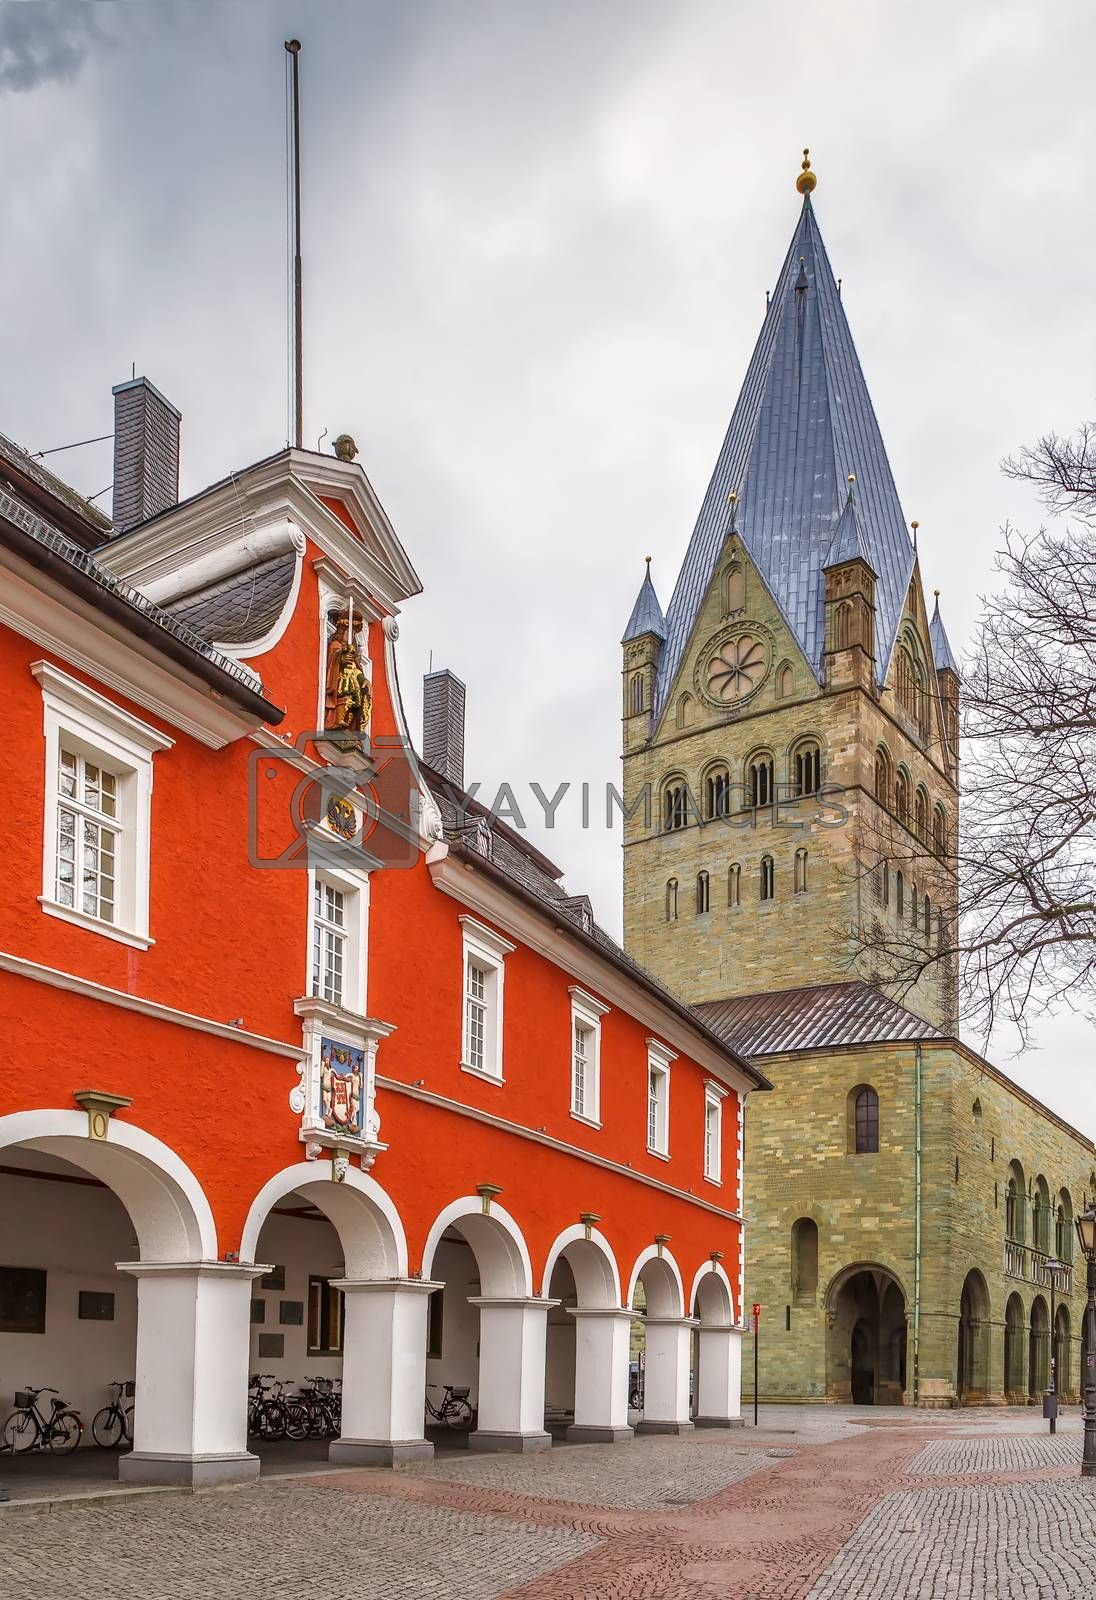 Royalty free image of St. Patroclus Cathedral, Soest, Germany by borisb17